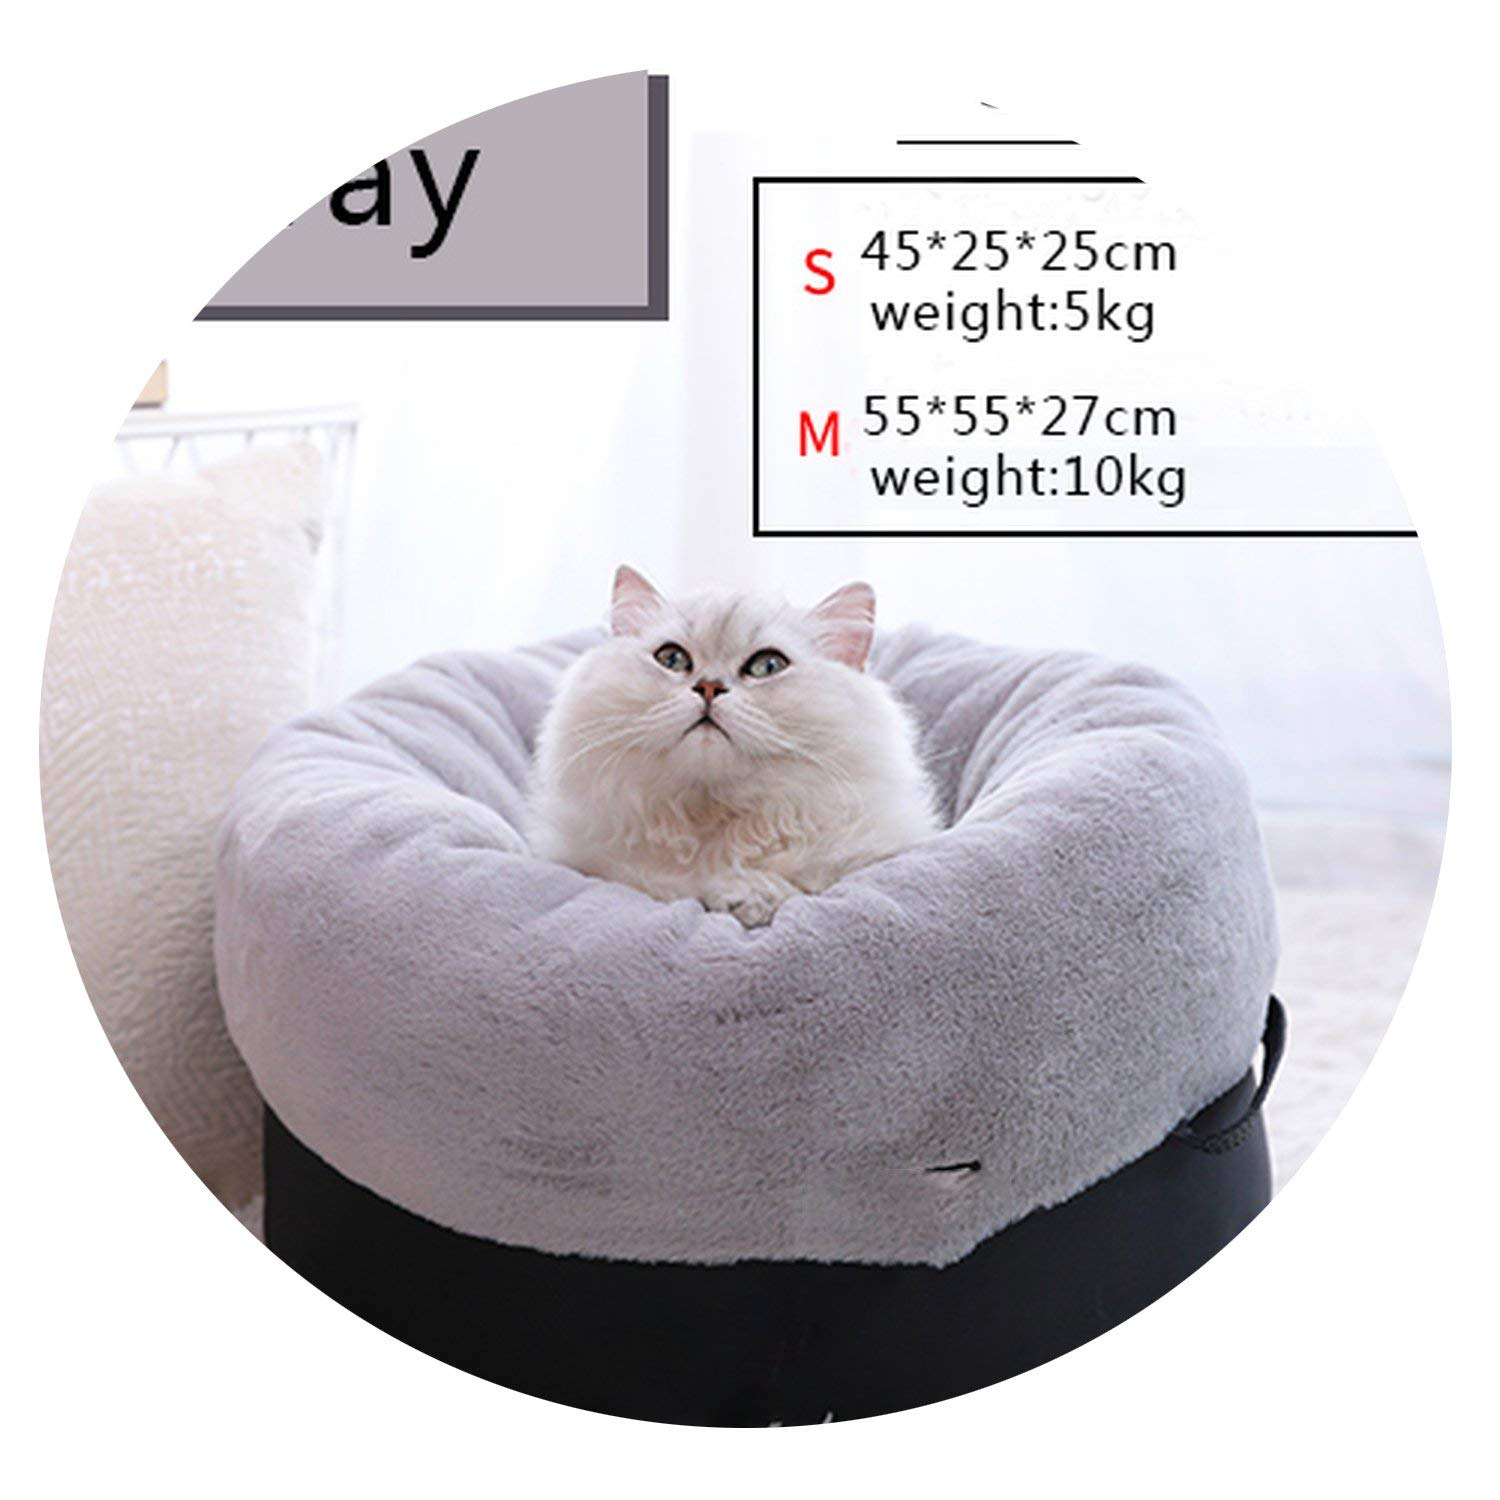 Astounding Amazon Com Cat Bed Bench For Cats Soft Material House For Squirreltailoven Fun Painted Chair Ideas Images Squirreltailovenorg